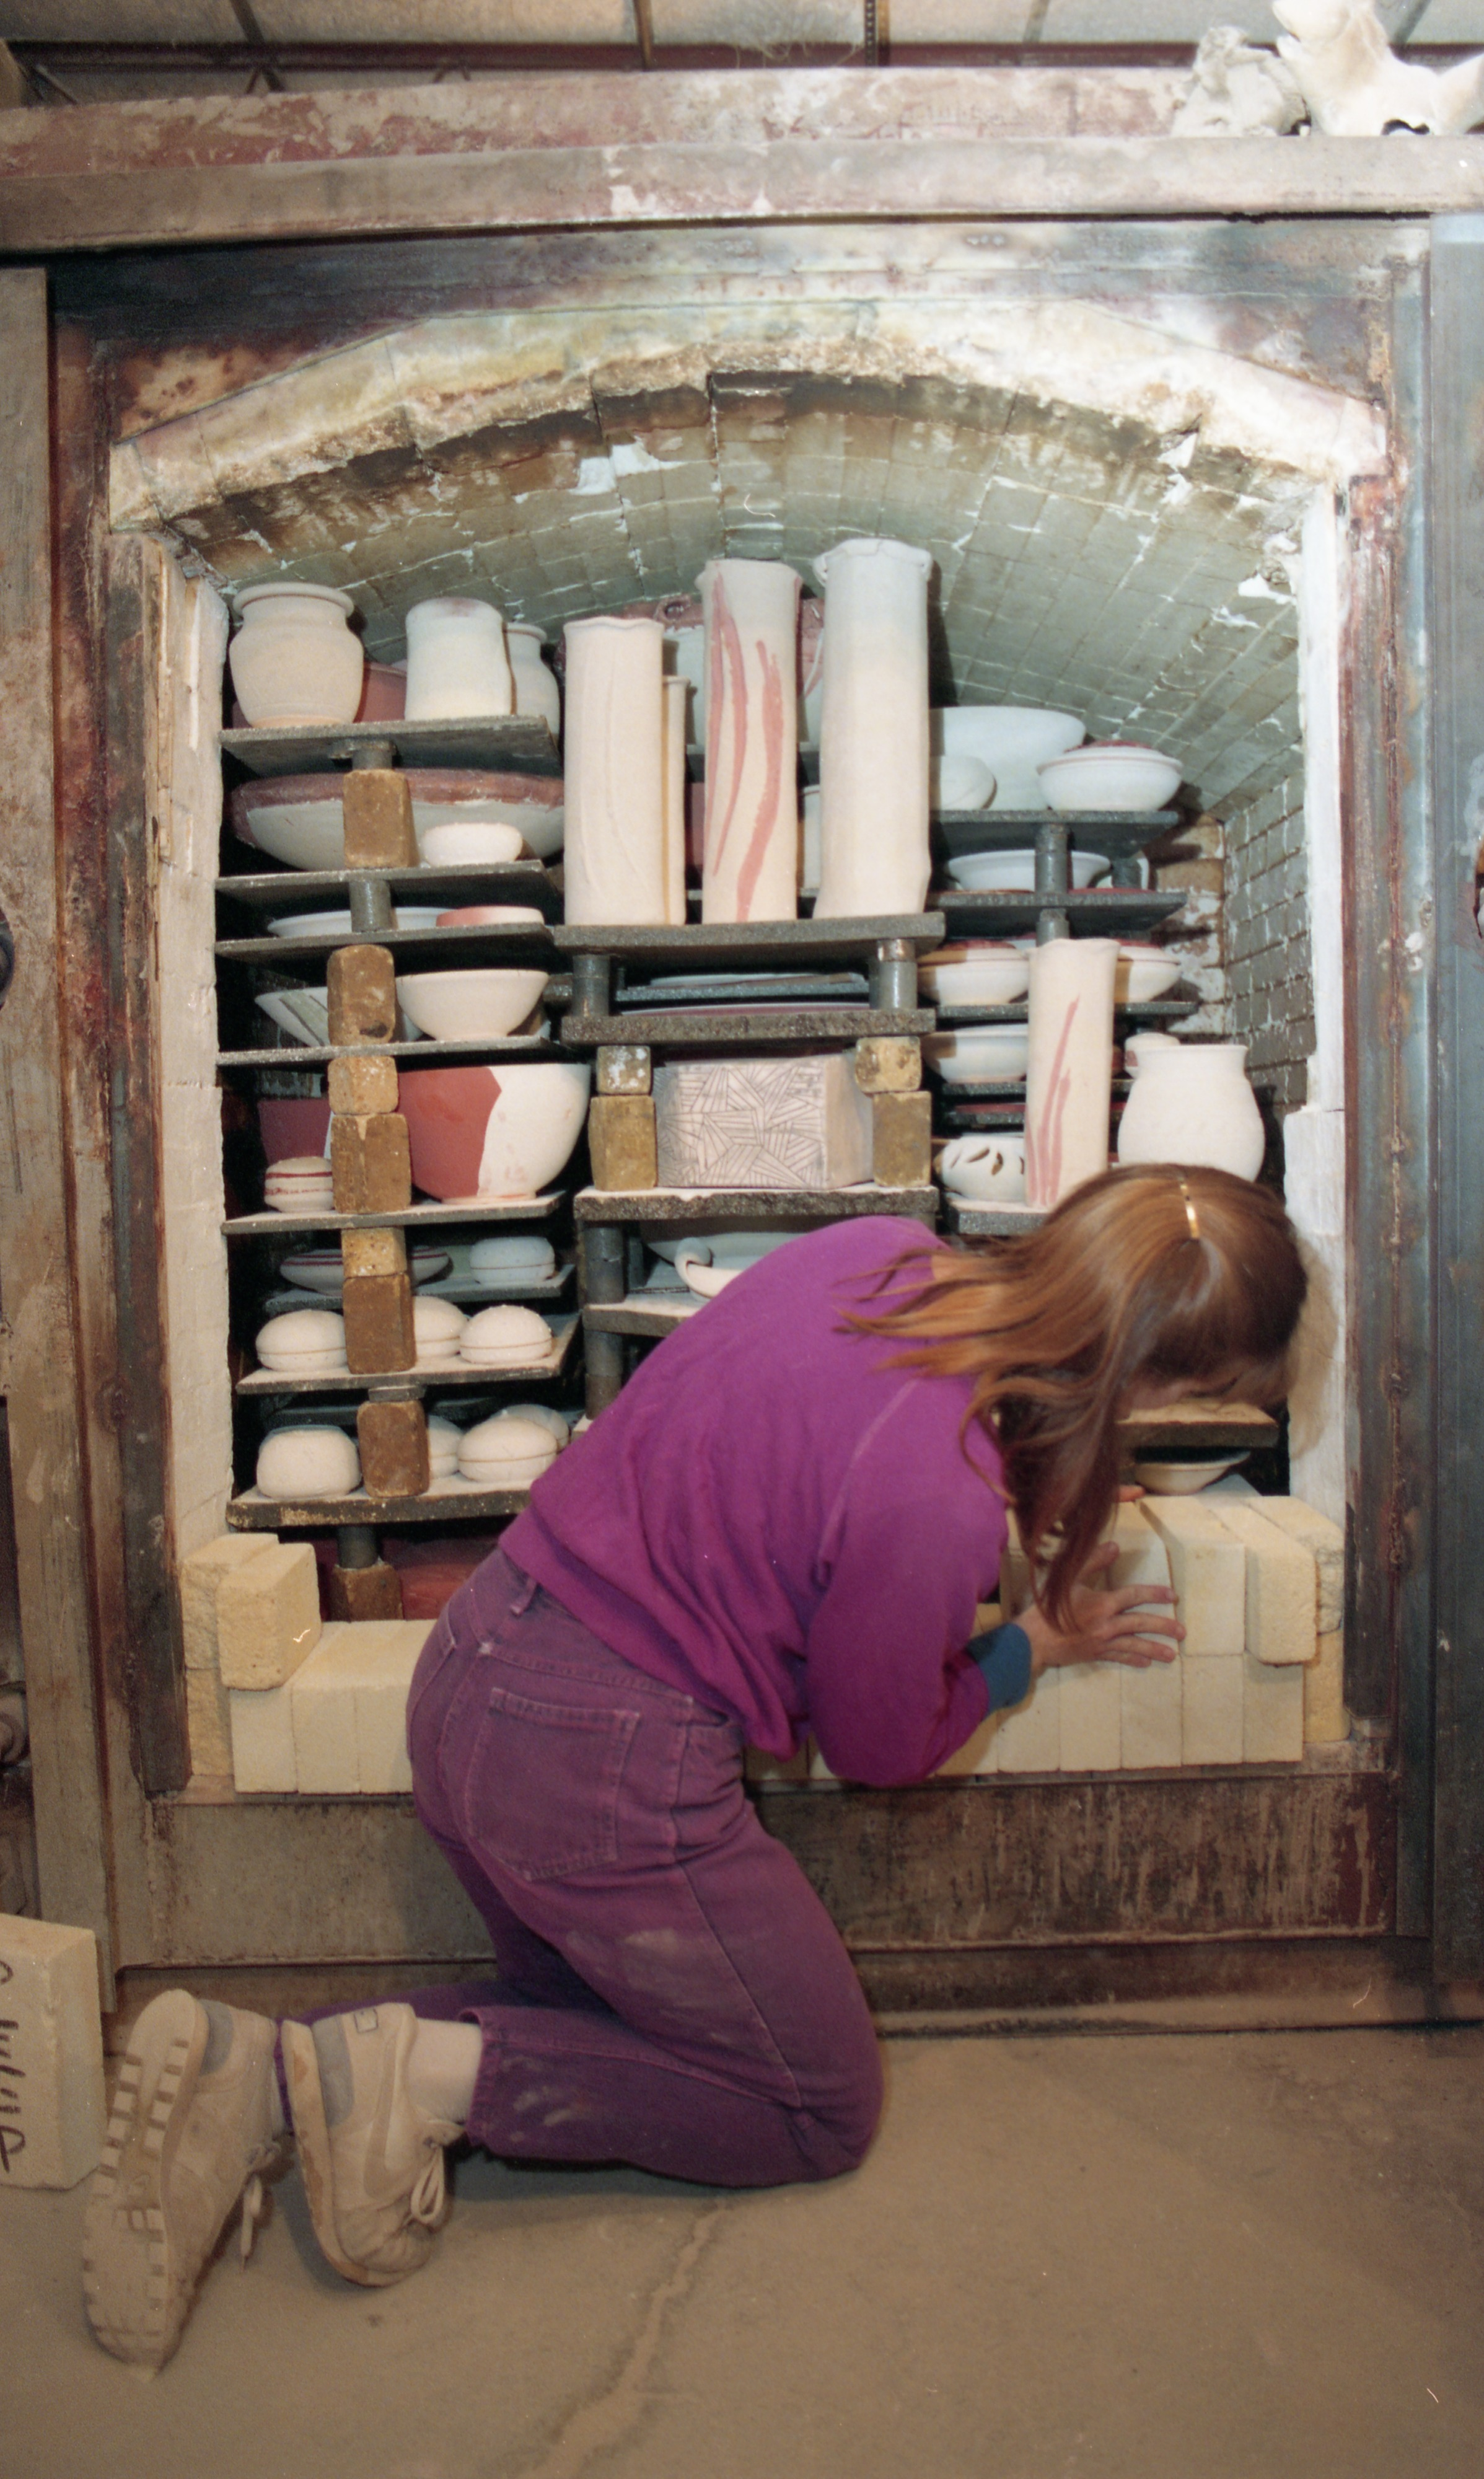 Jeri Hollister Prepares The Kiln For Firing At The Ann Arbor Potters Guild, November 1994 image